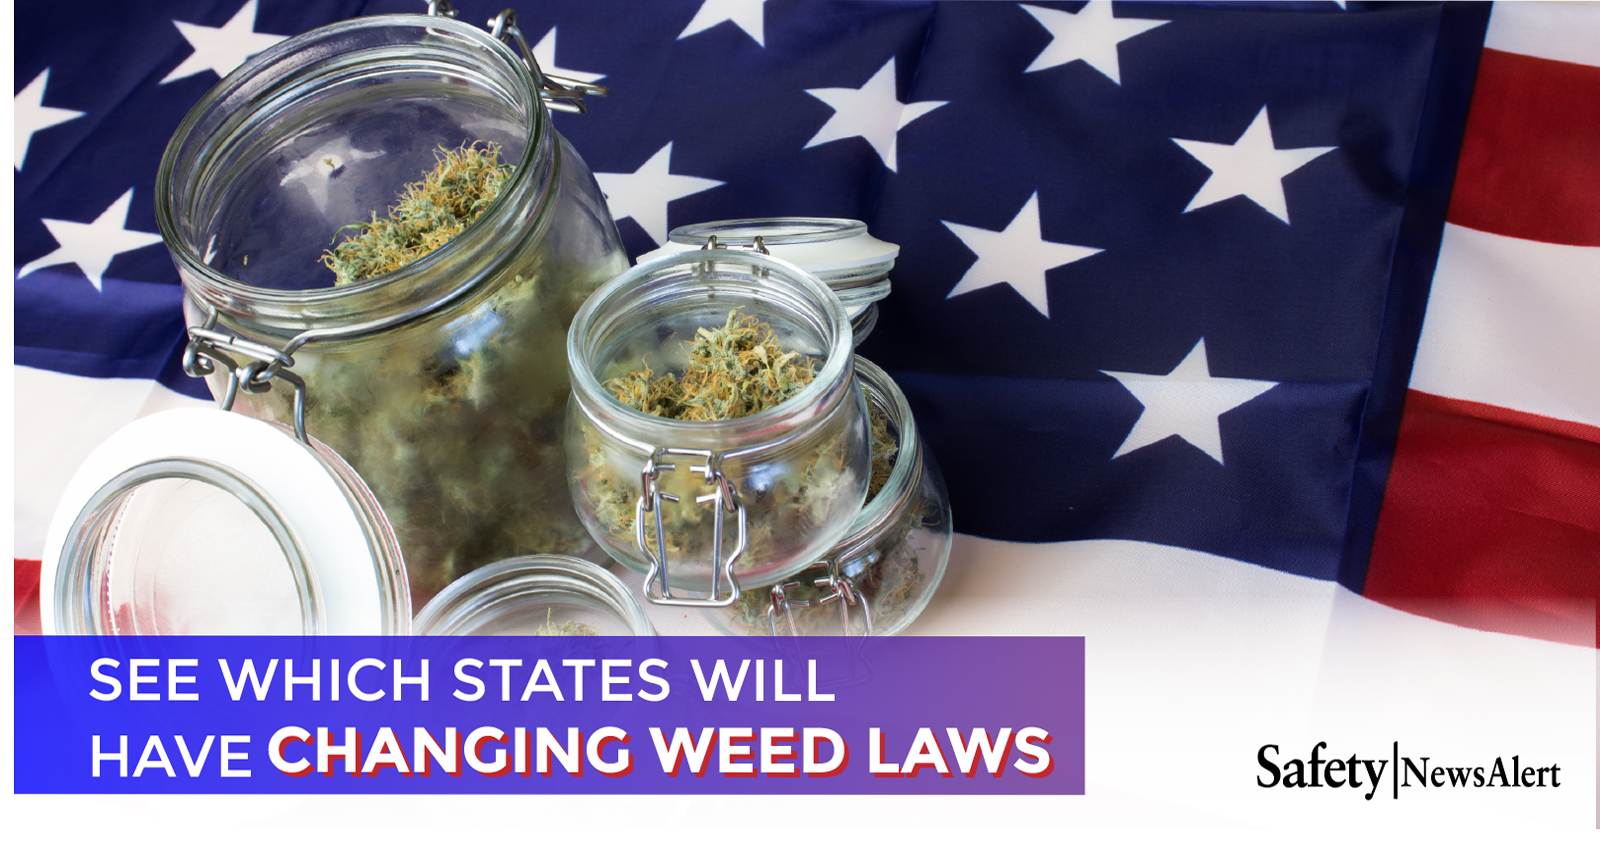 see which states will have changing weed laws